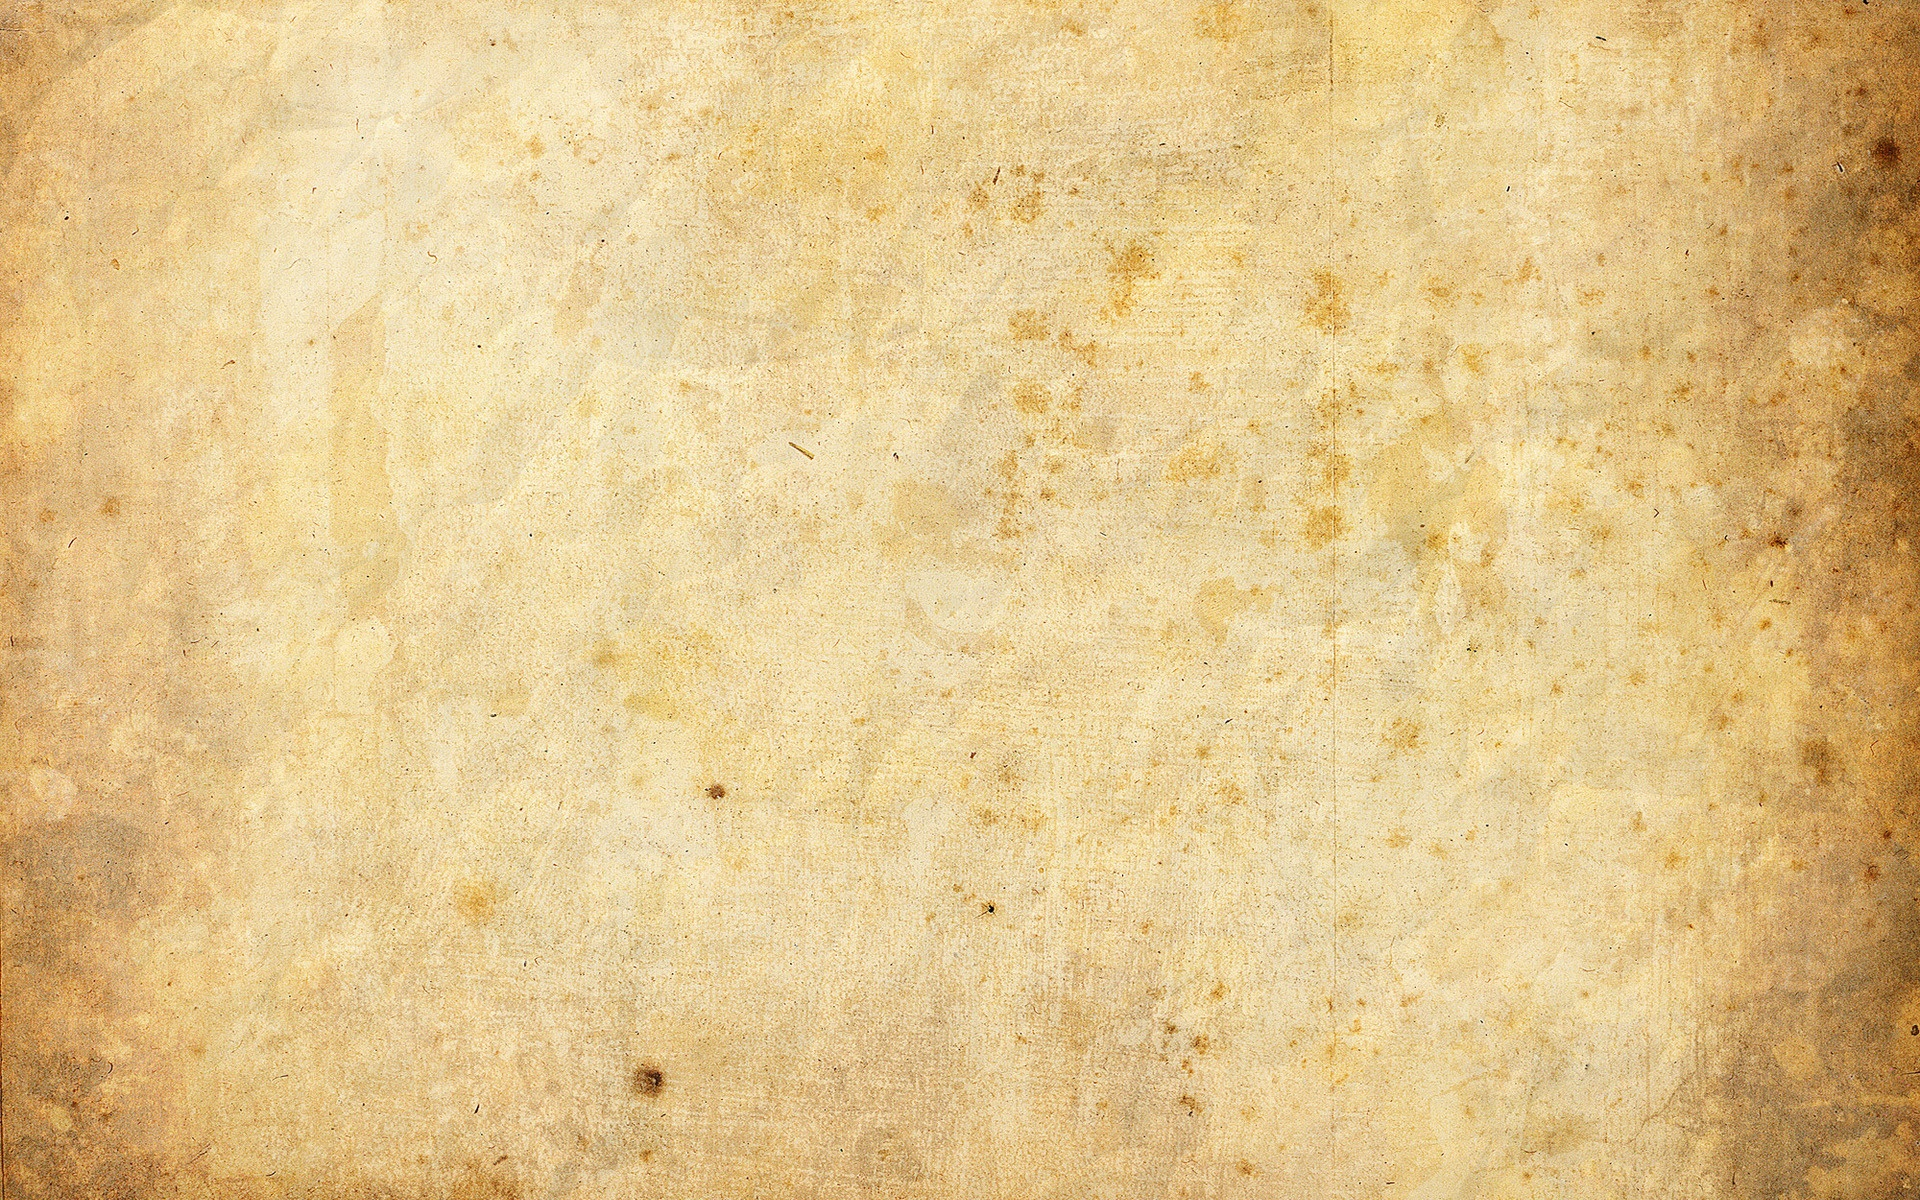 40 High Quality Vintage Background Images   Creatives 1920x1200